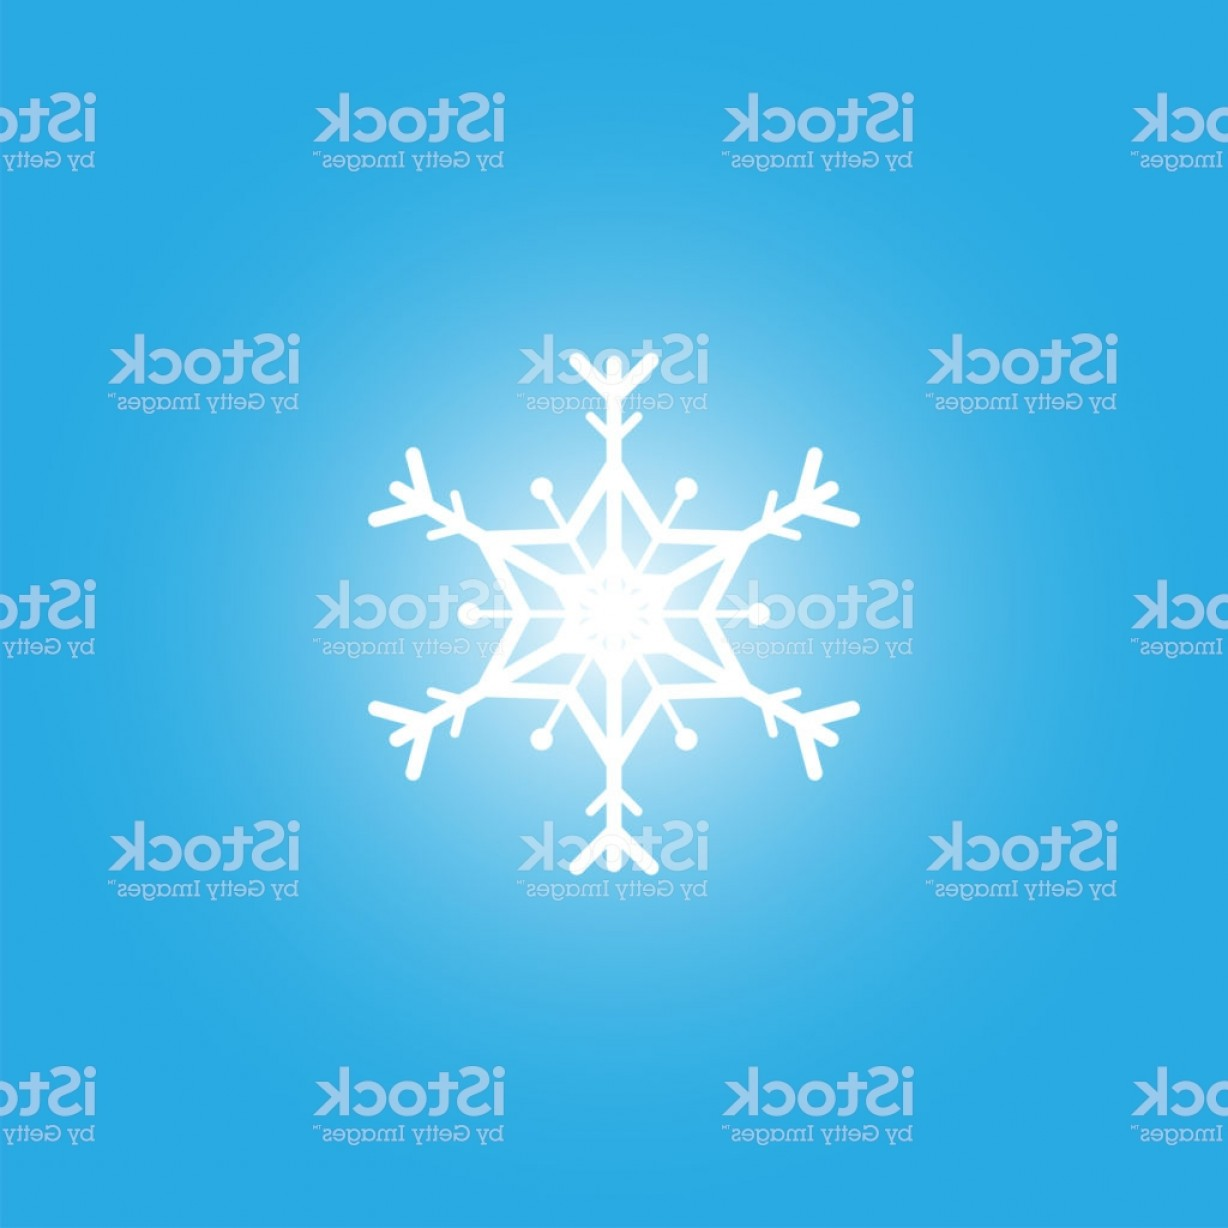 White Snowflake Vector Art: White Snowflake Isolated On Blue Background Gm